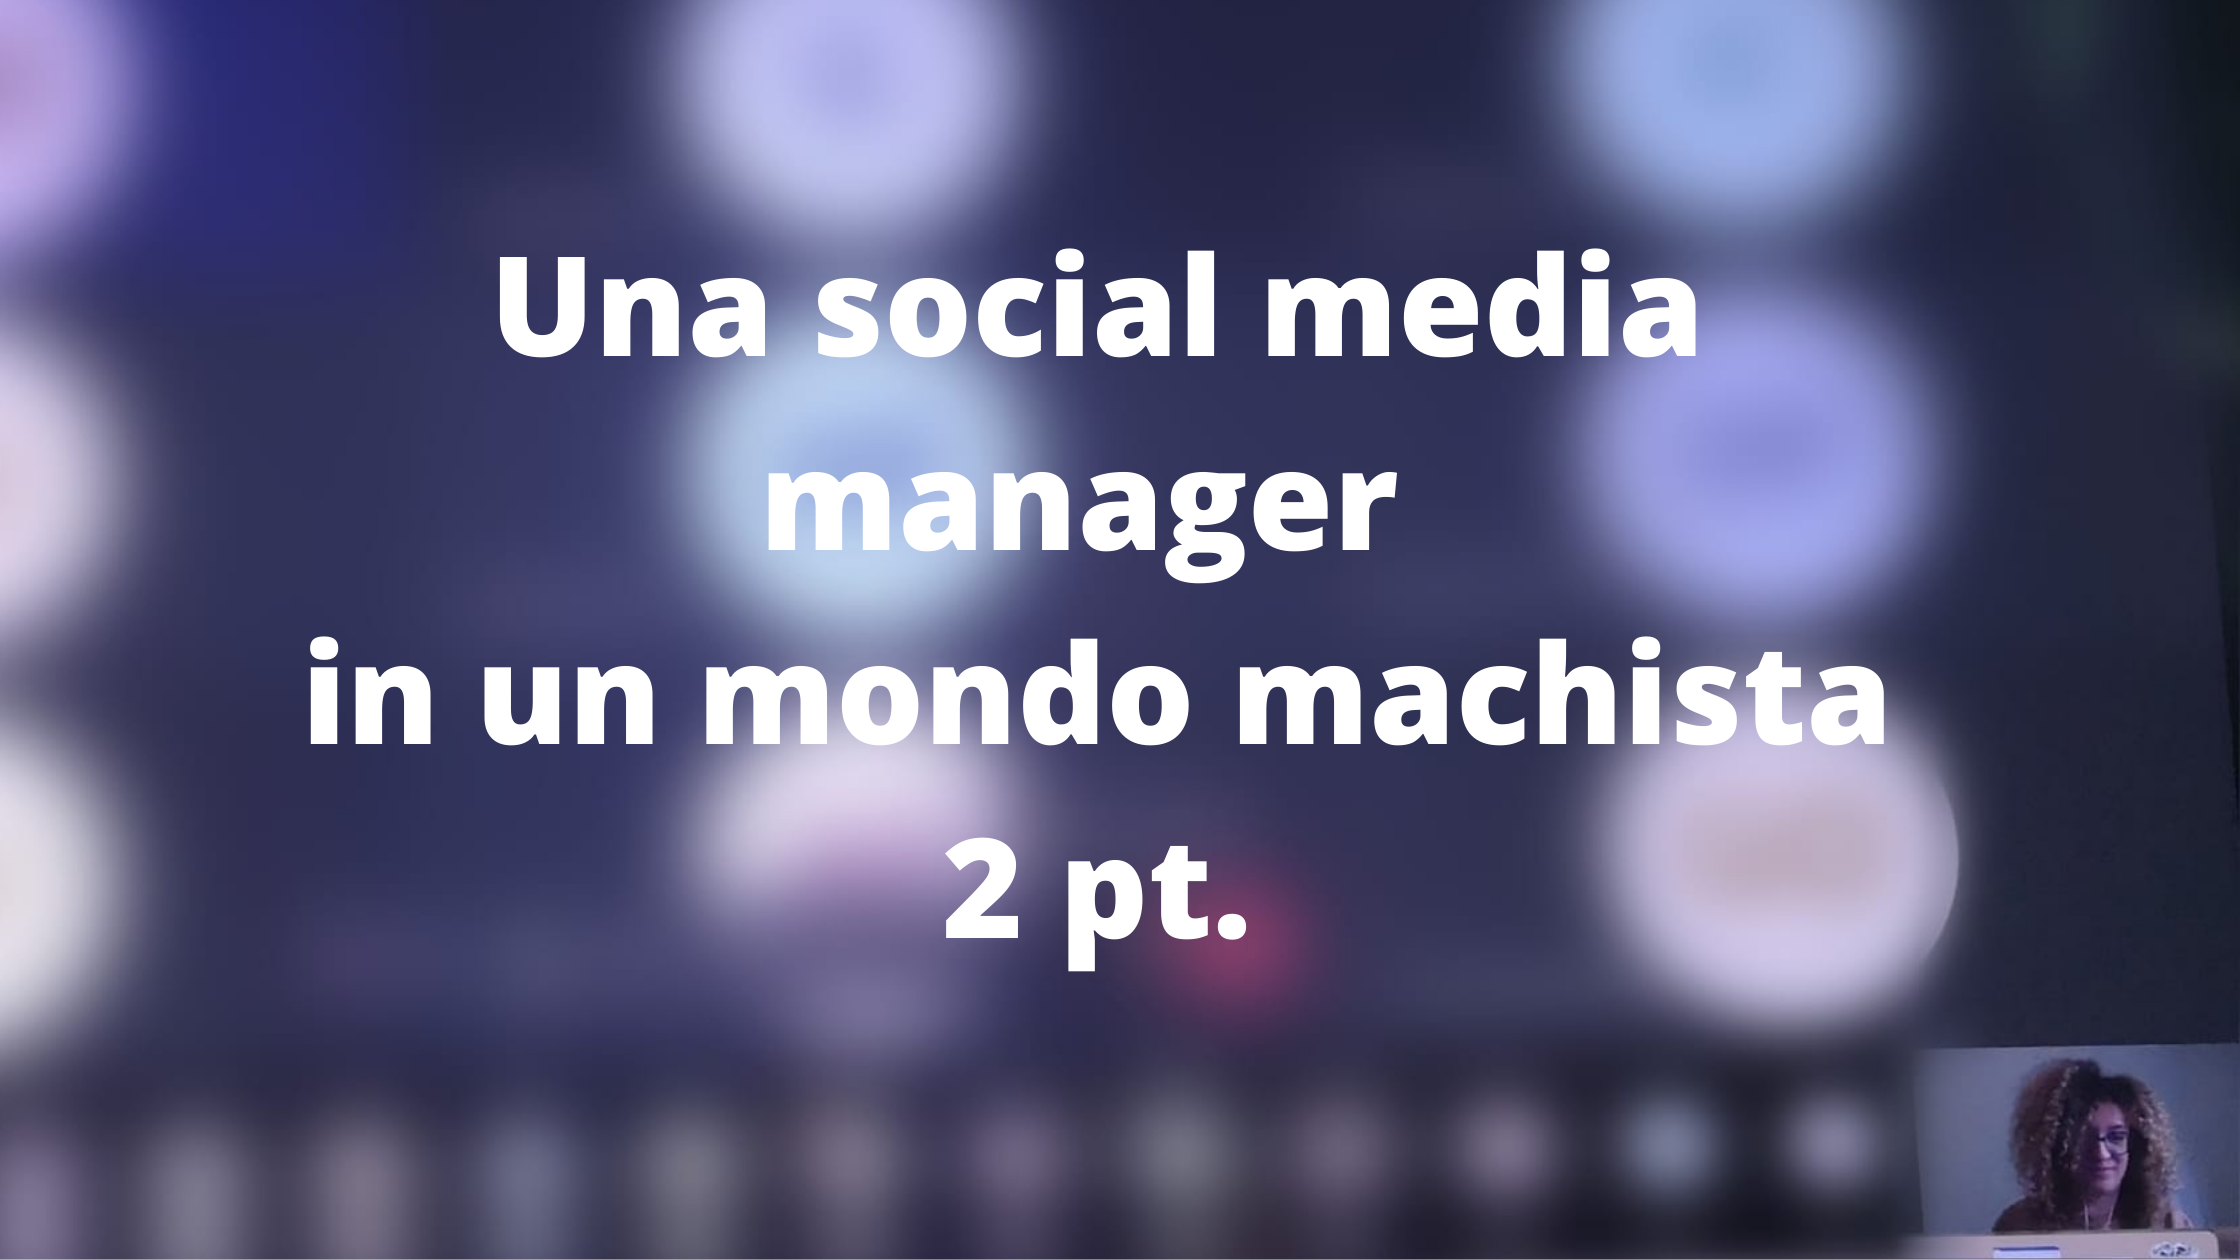 Gender Studies. Una social media manager in un mondo machista 2 pt.